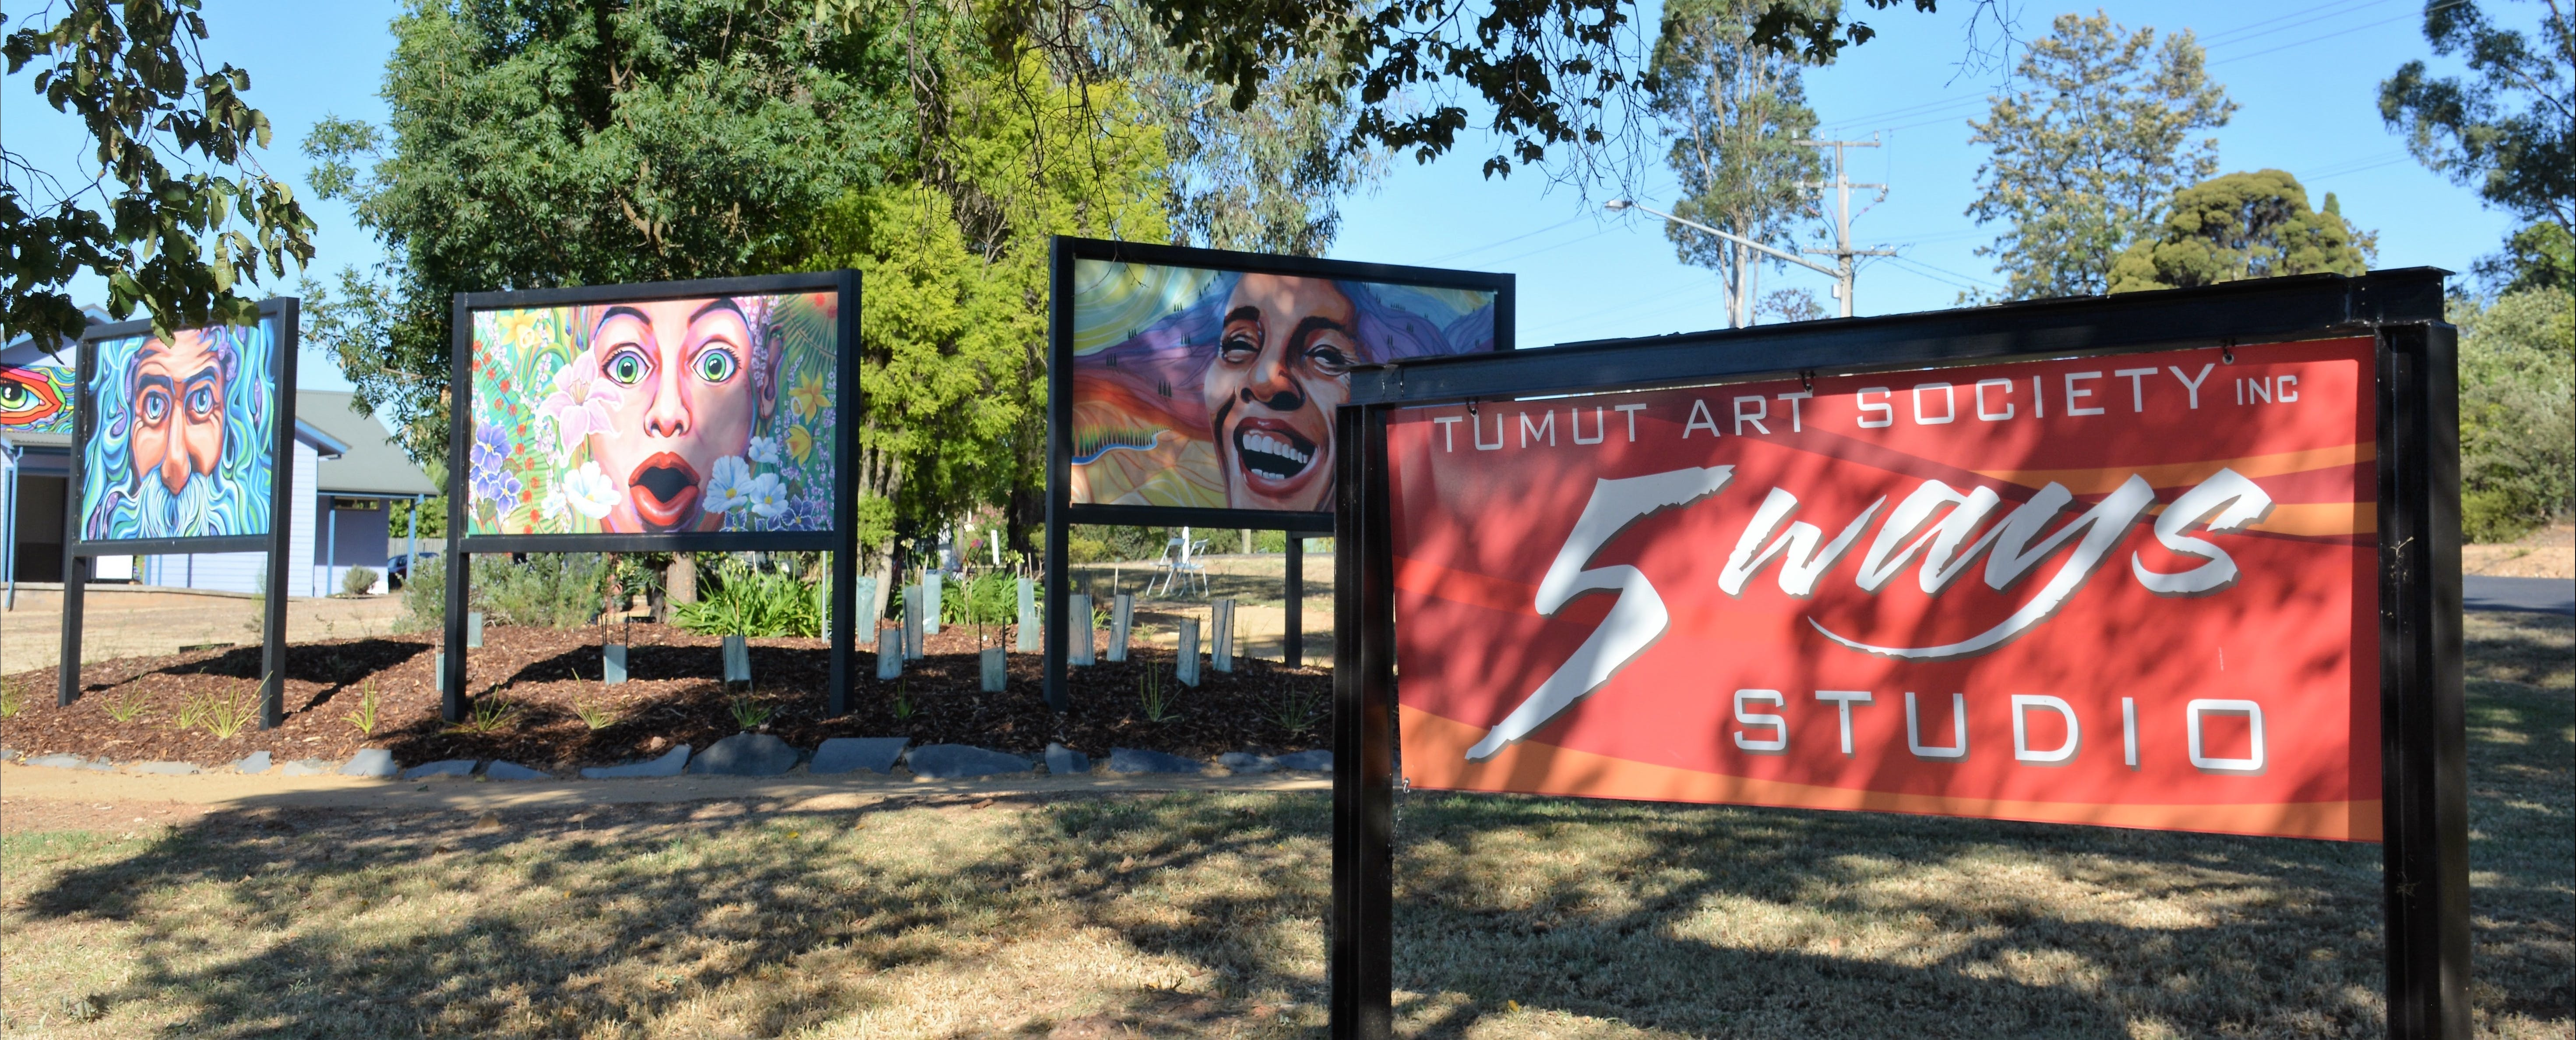 Tumut Art Society 5Ways Gallery - Accommodation Burleigh